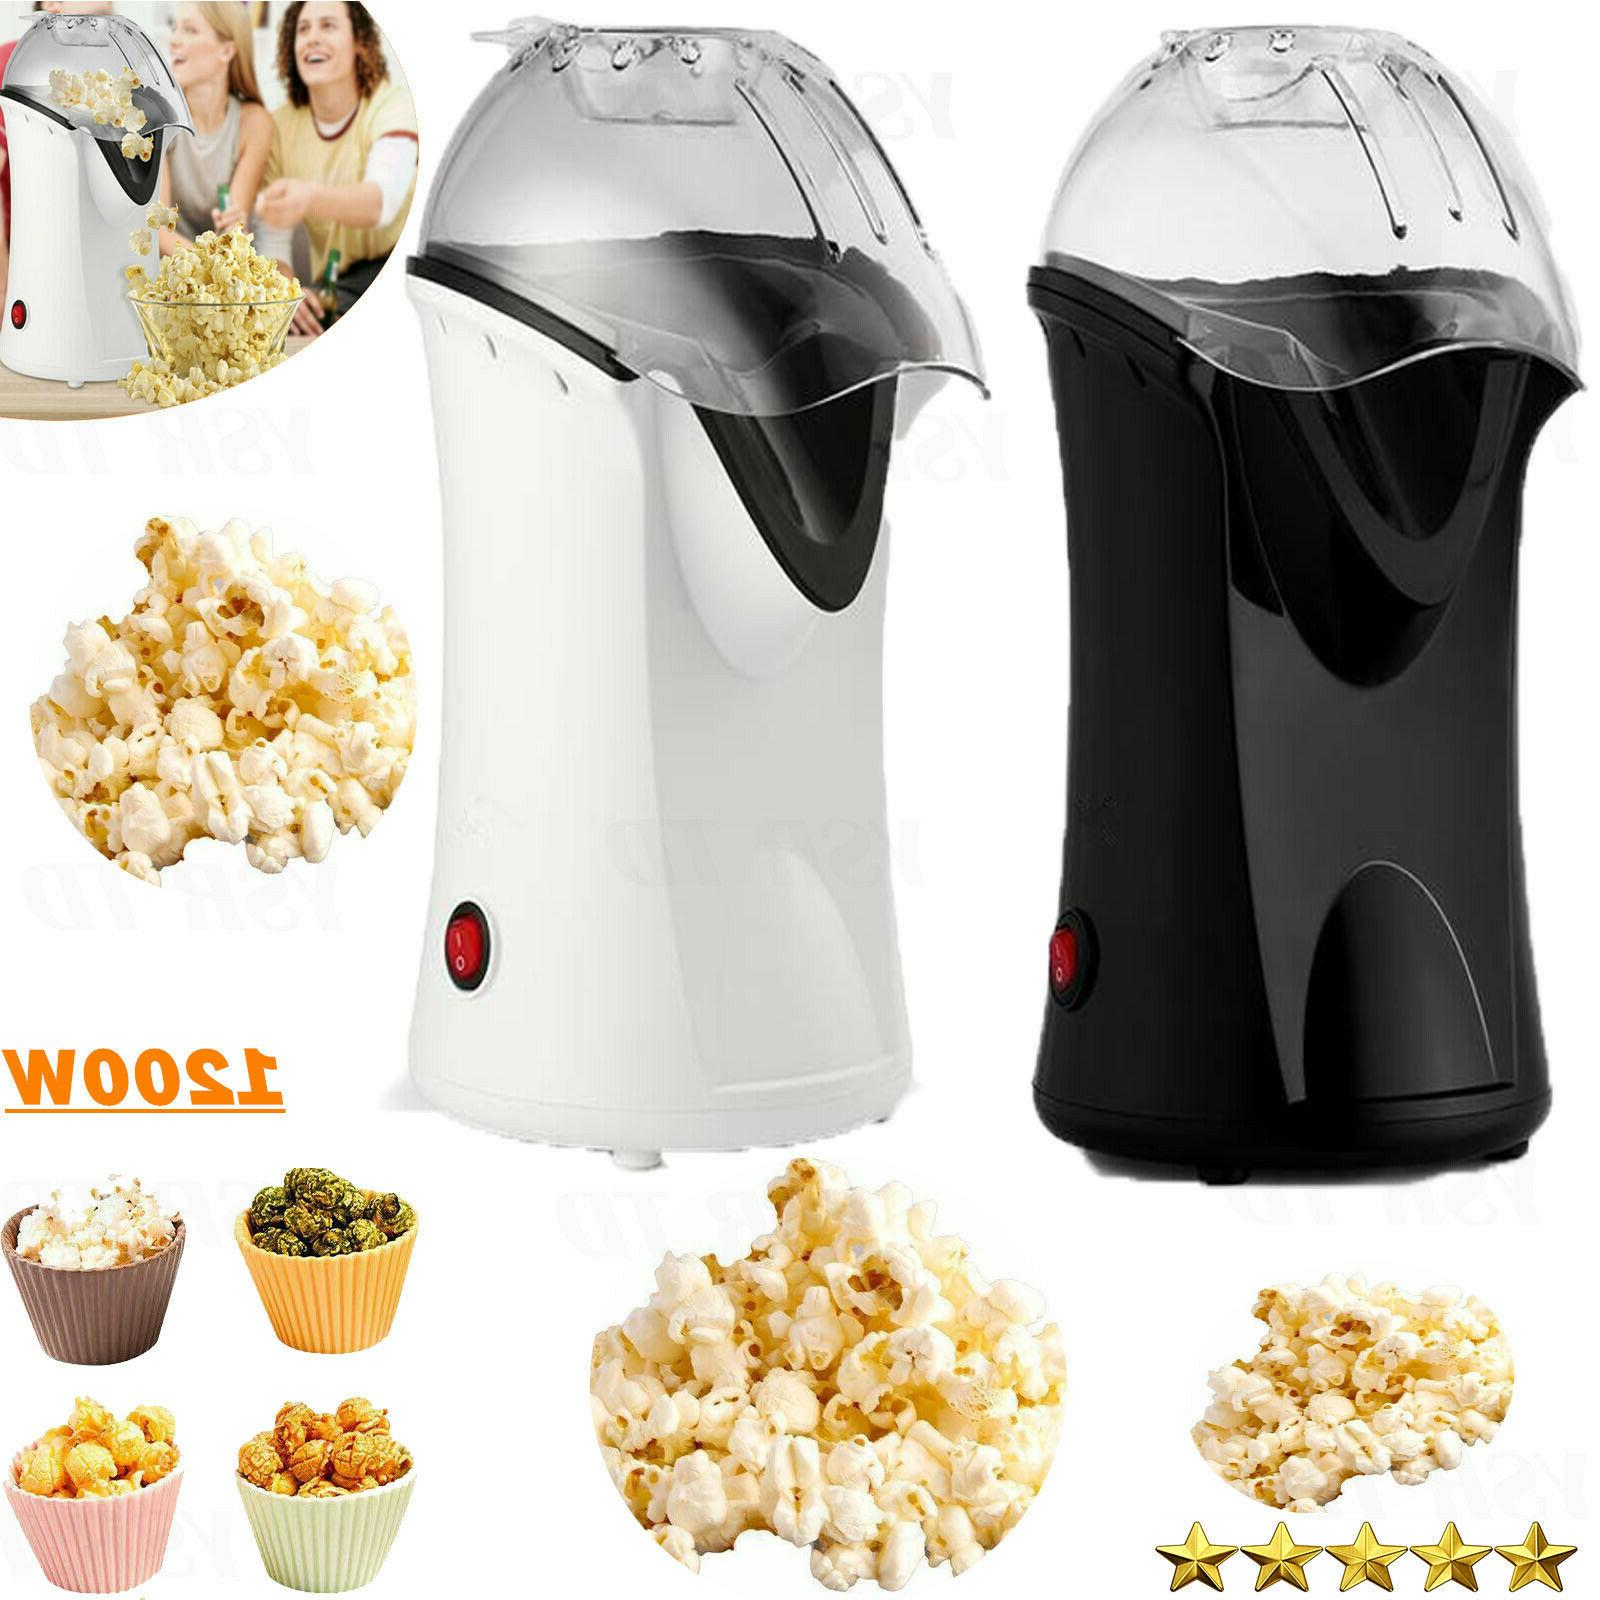 Homdox Popcorn Machine, Popcorn Electric Popcorn